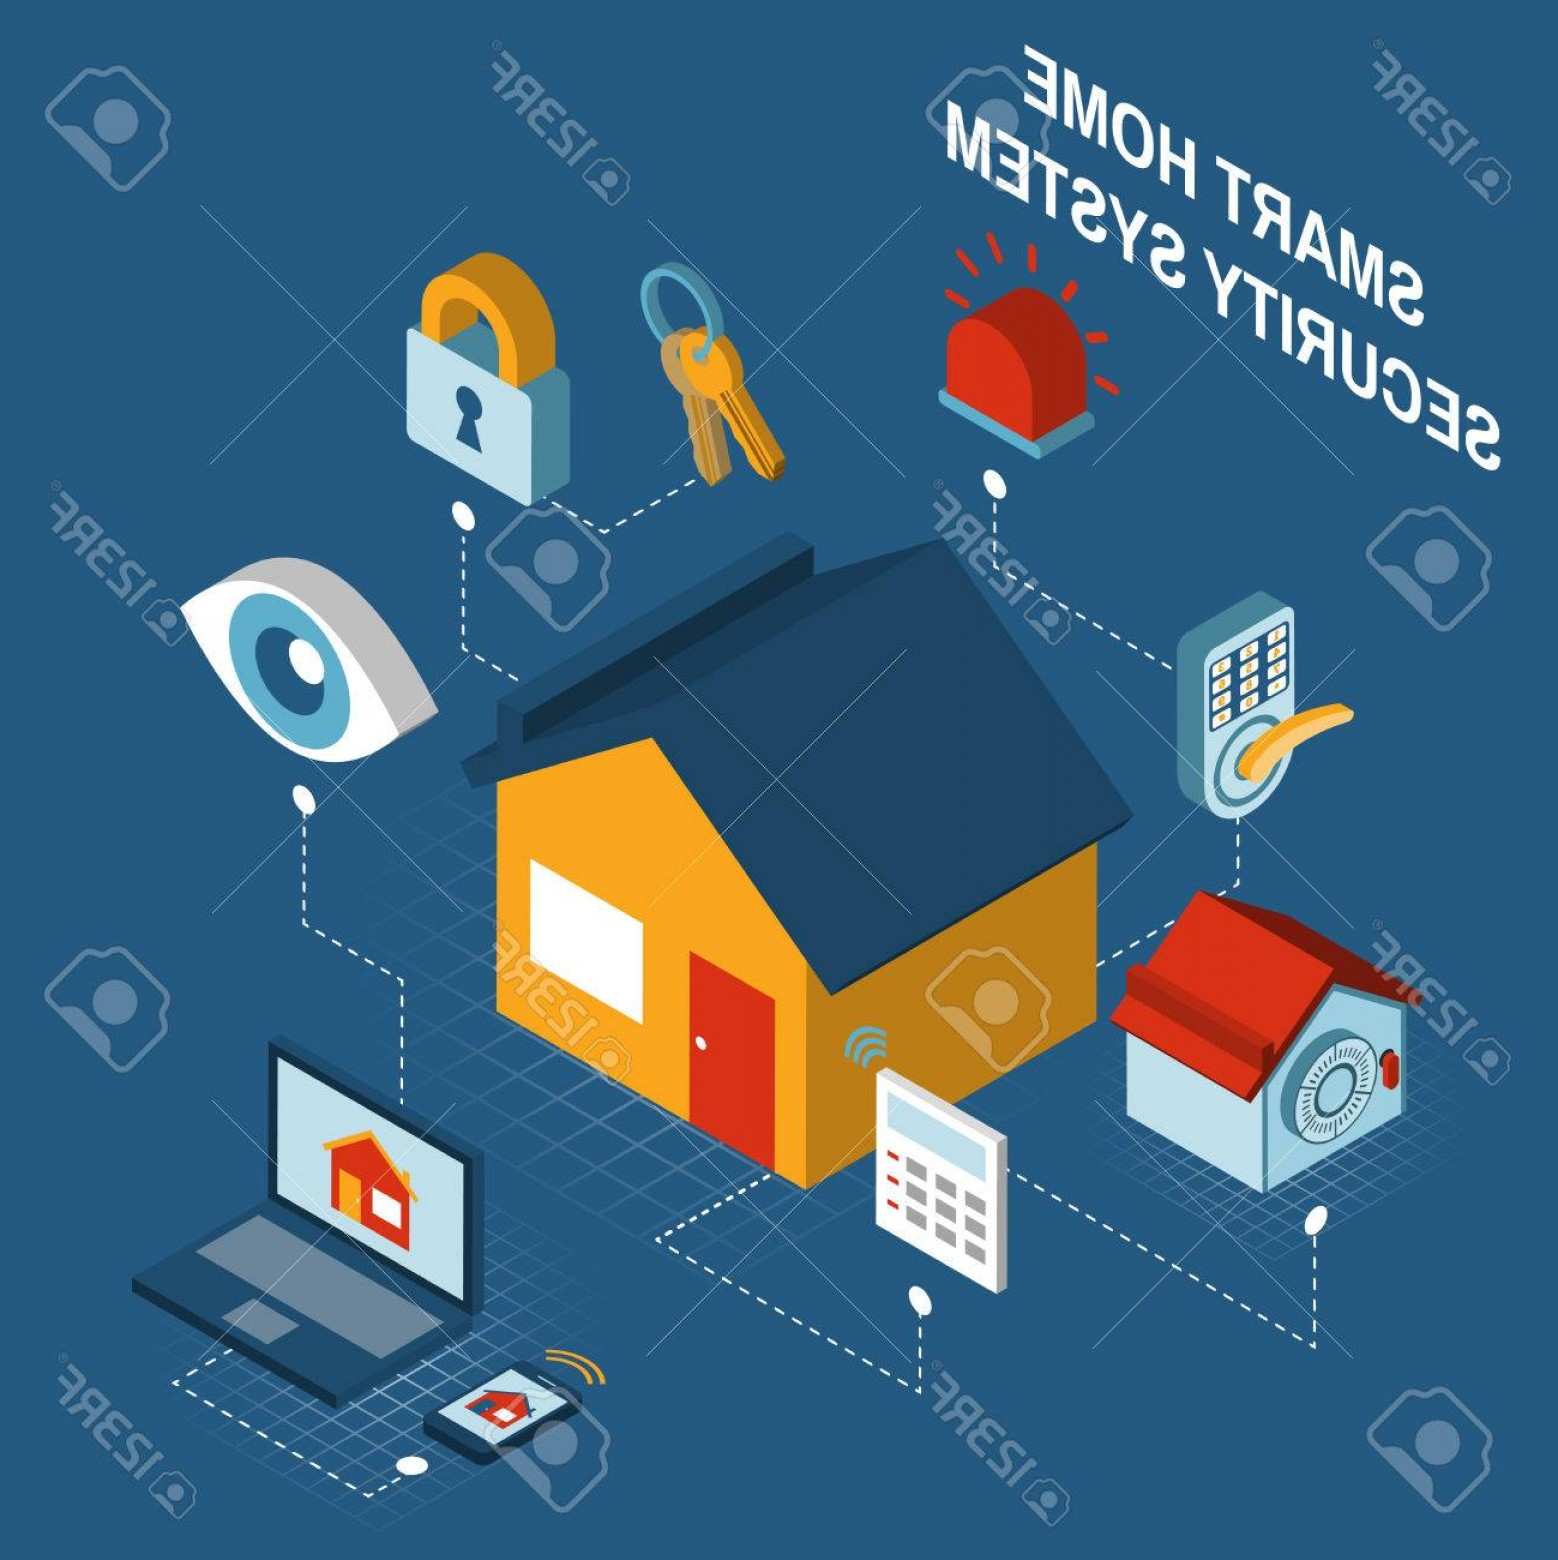 Smart Home Remote Vector: Photostock Vector Smart Home Security Alarm Computerized Remote Control System Concept Poster With House Symbol Isomet